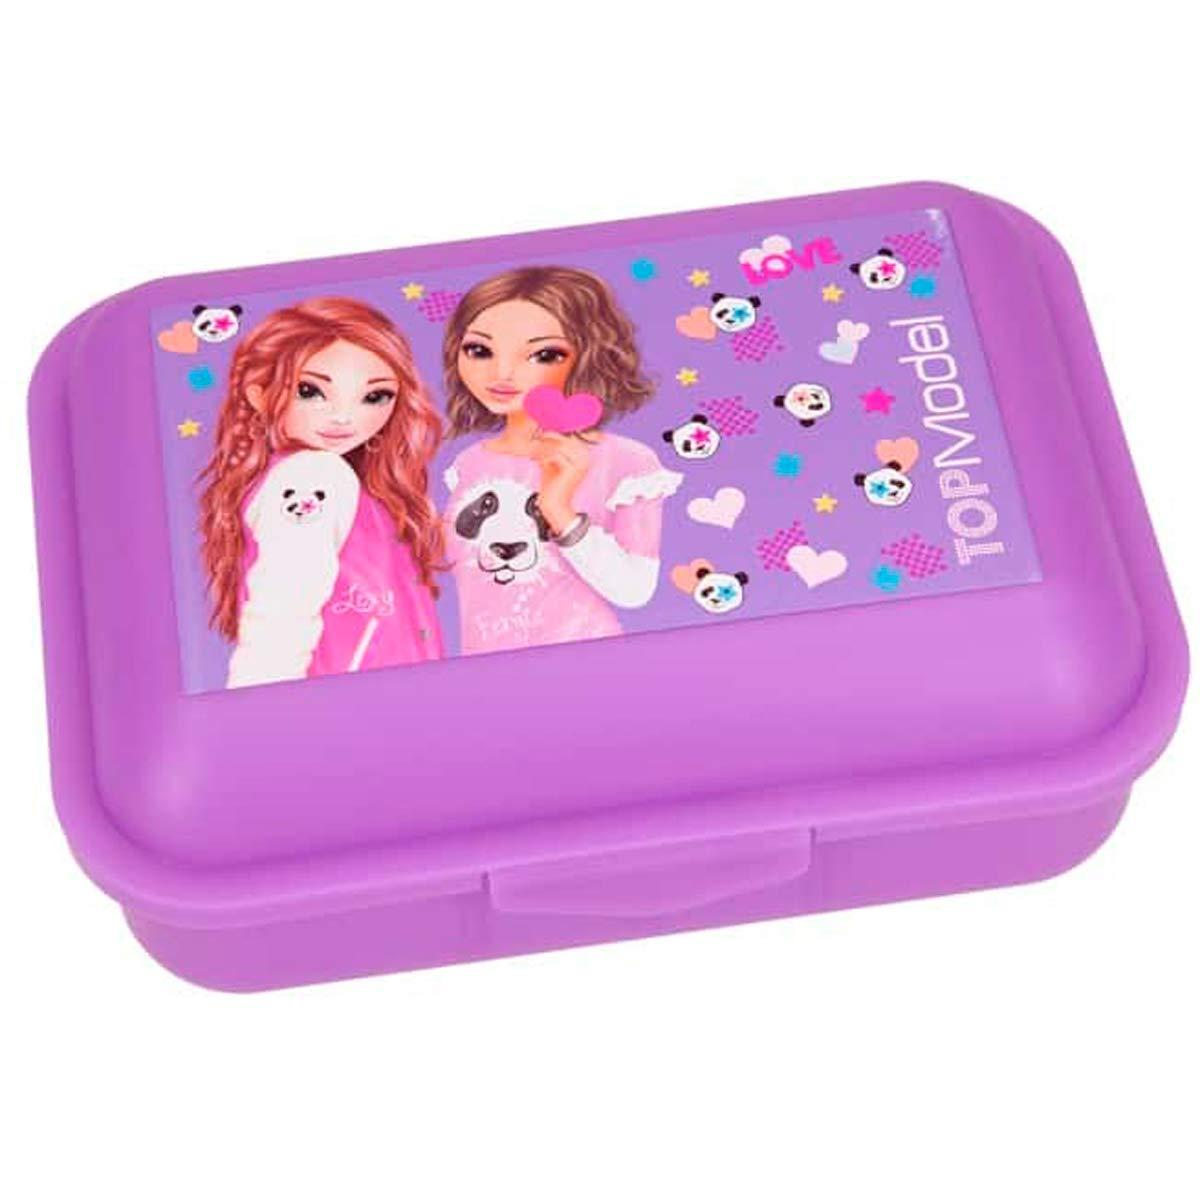 Ланч-Бокс TOP-Model (Ланч-бокс для еды в школу Friends, the lunch box in a Fantasy Model design) Lexy&Fergie